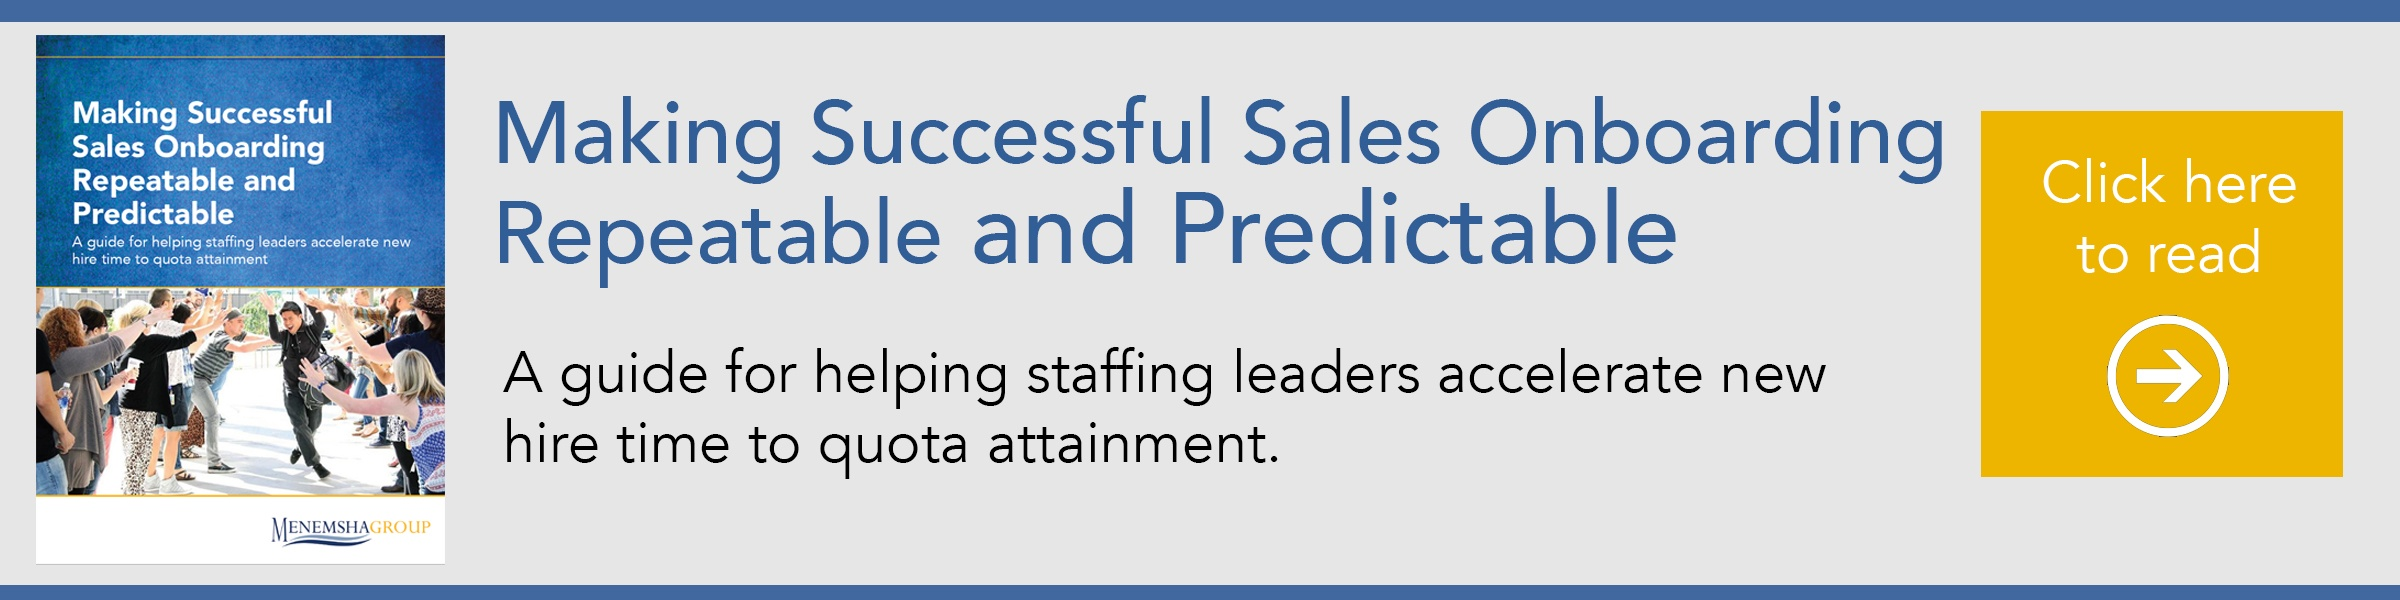 Making Successful Sales Onboarding Repeatable and Predictable